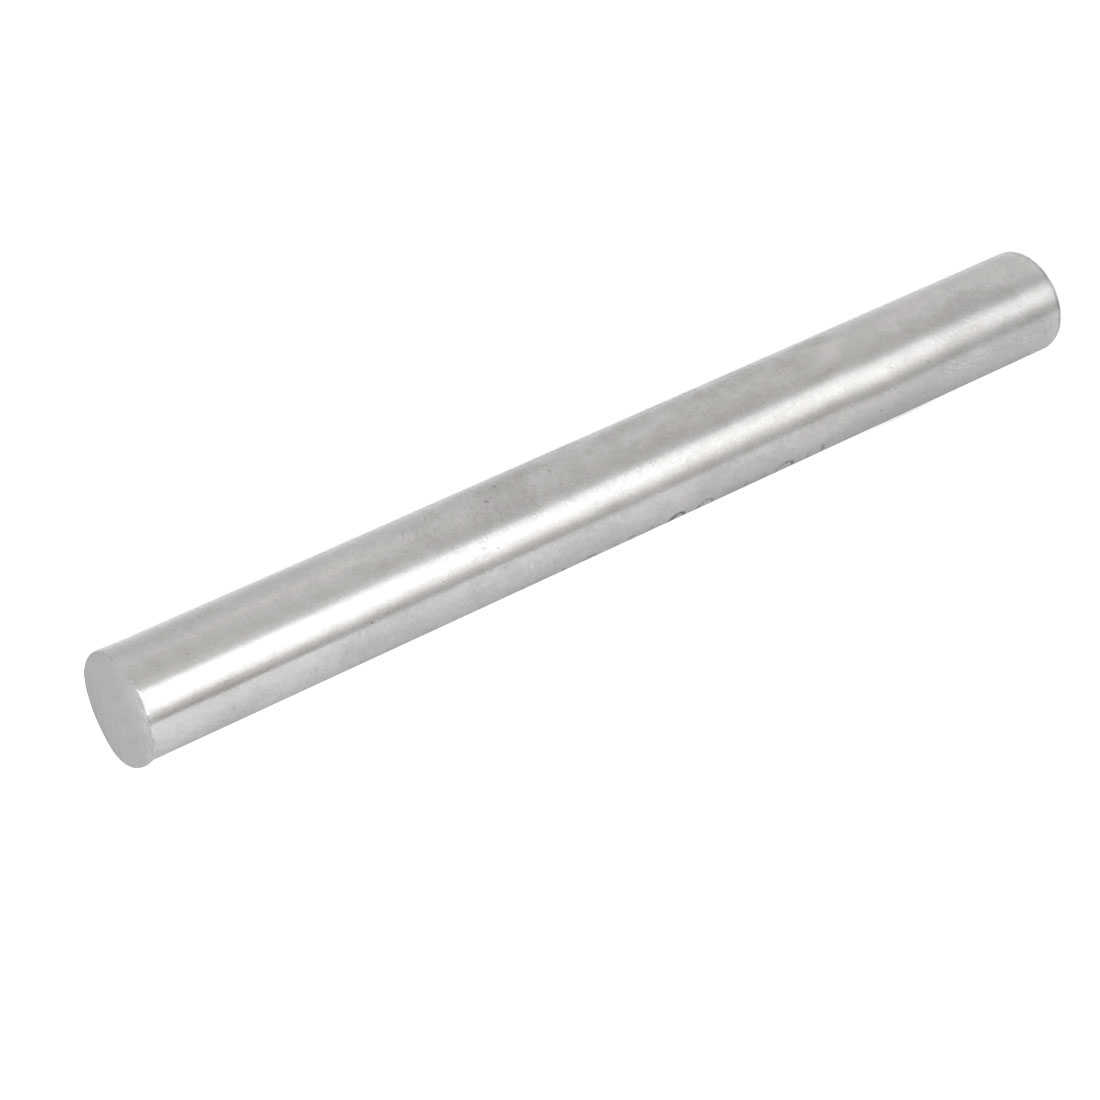 10mm Dia 100mm Length HSS Round Stock Rod Lathe Tools Silver Tone